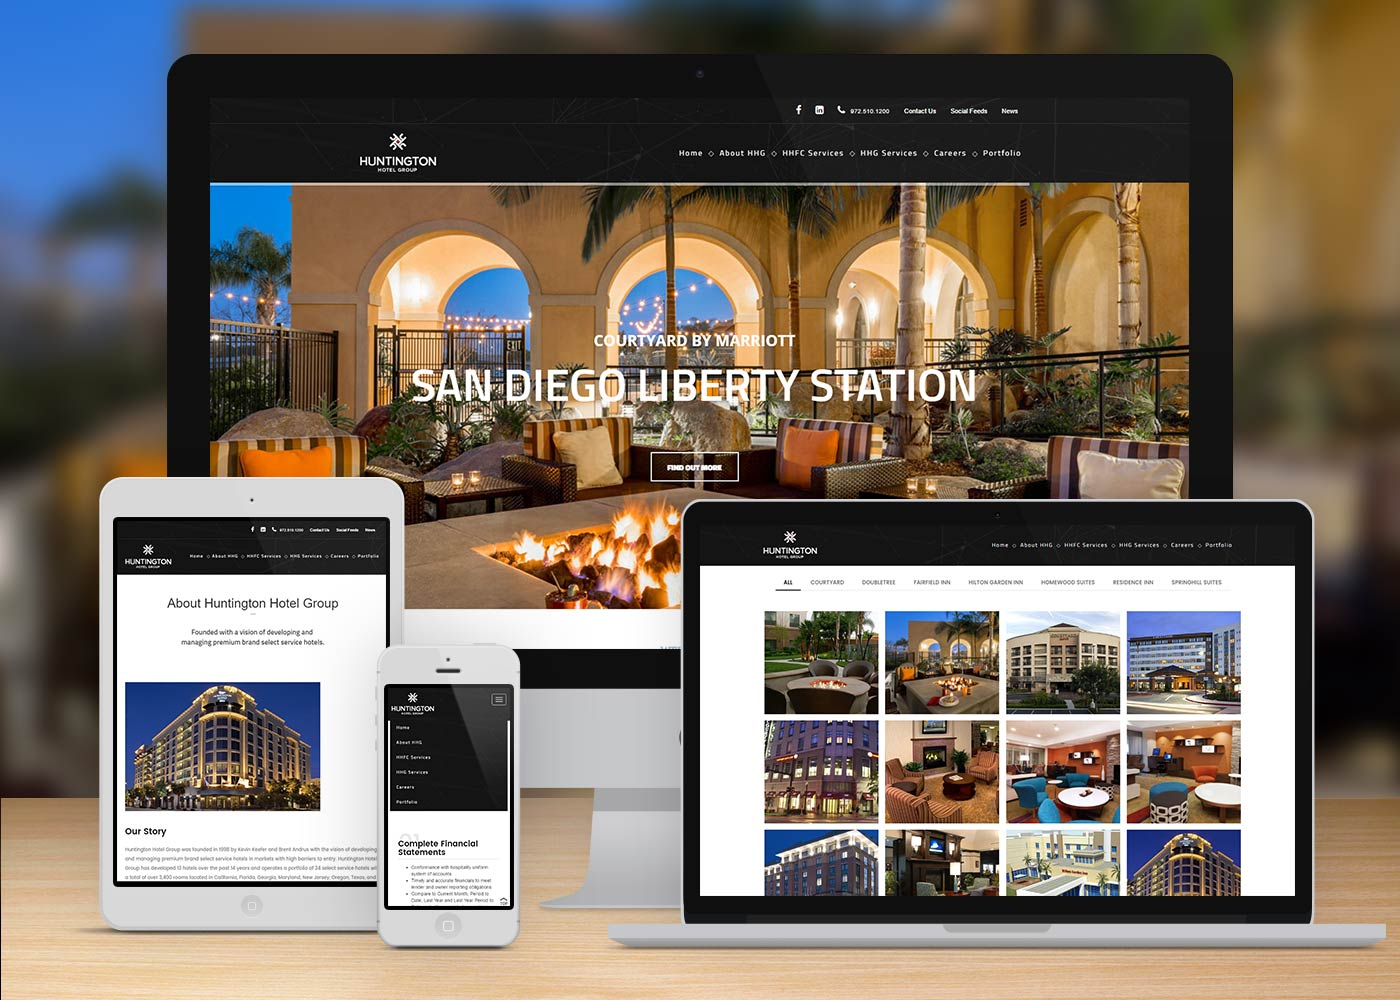 ATH Website Design and Development - Huntington Hotel Group